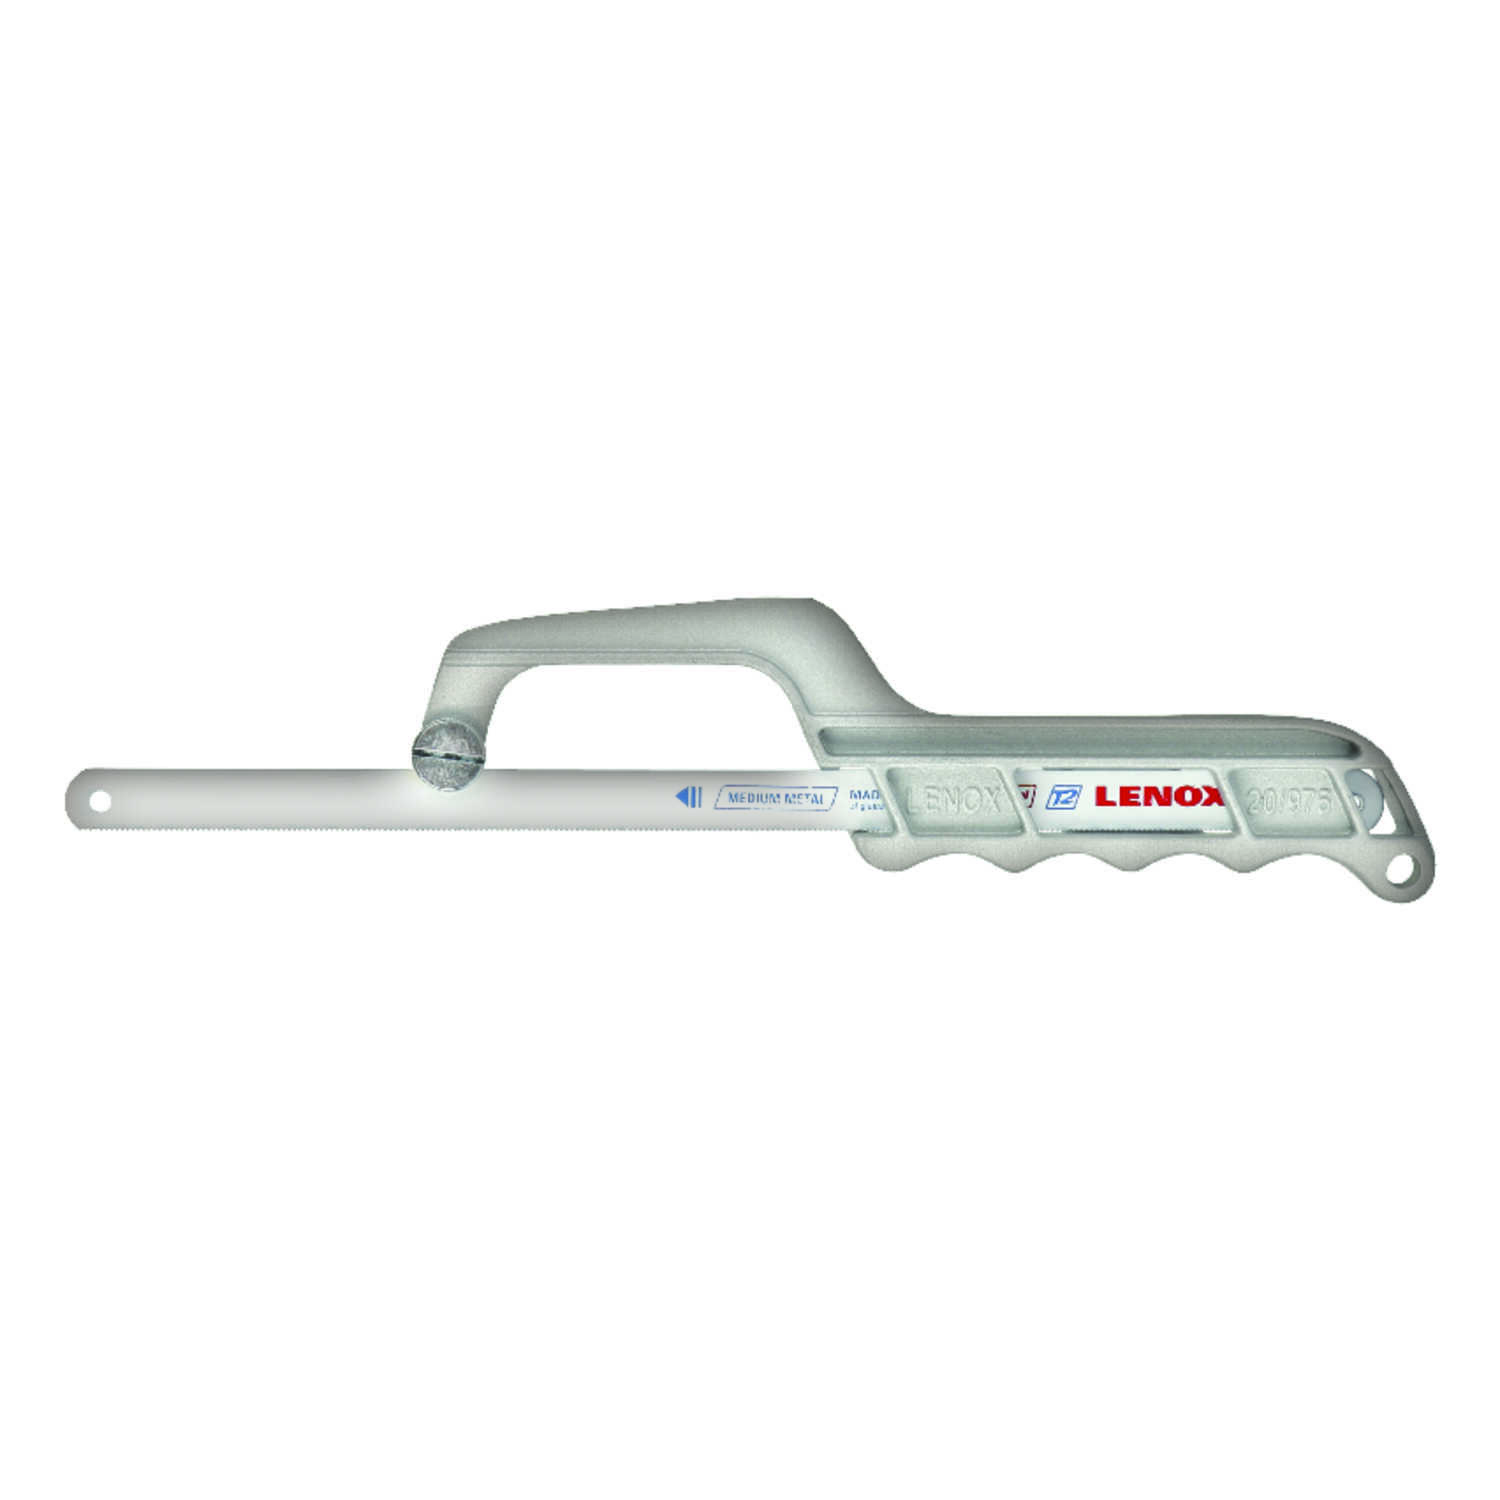 Lenox  Close Quarter  12 in. Hacksaw  White  1 pc.